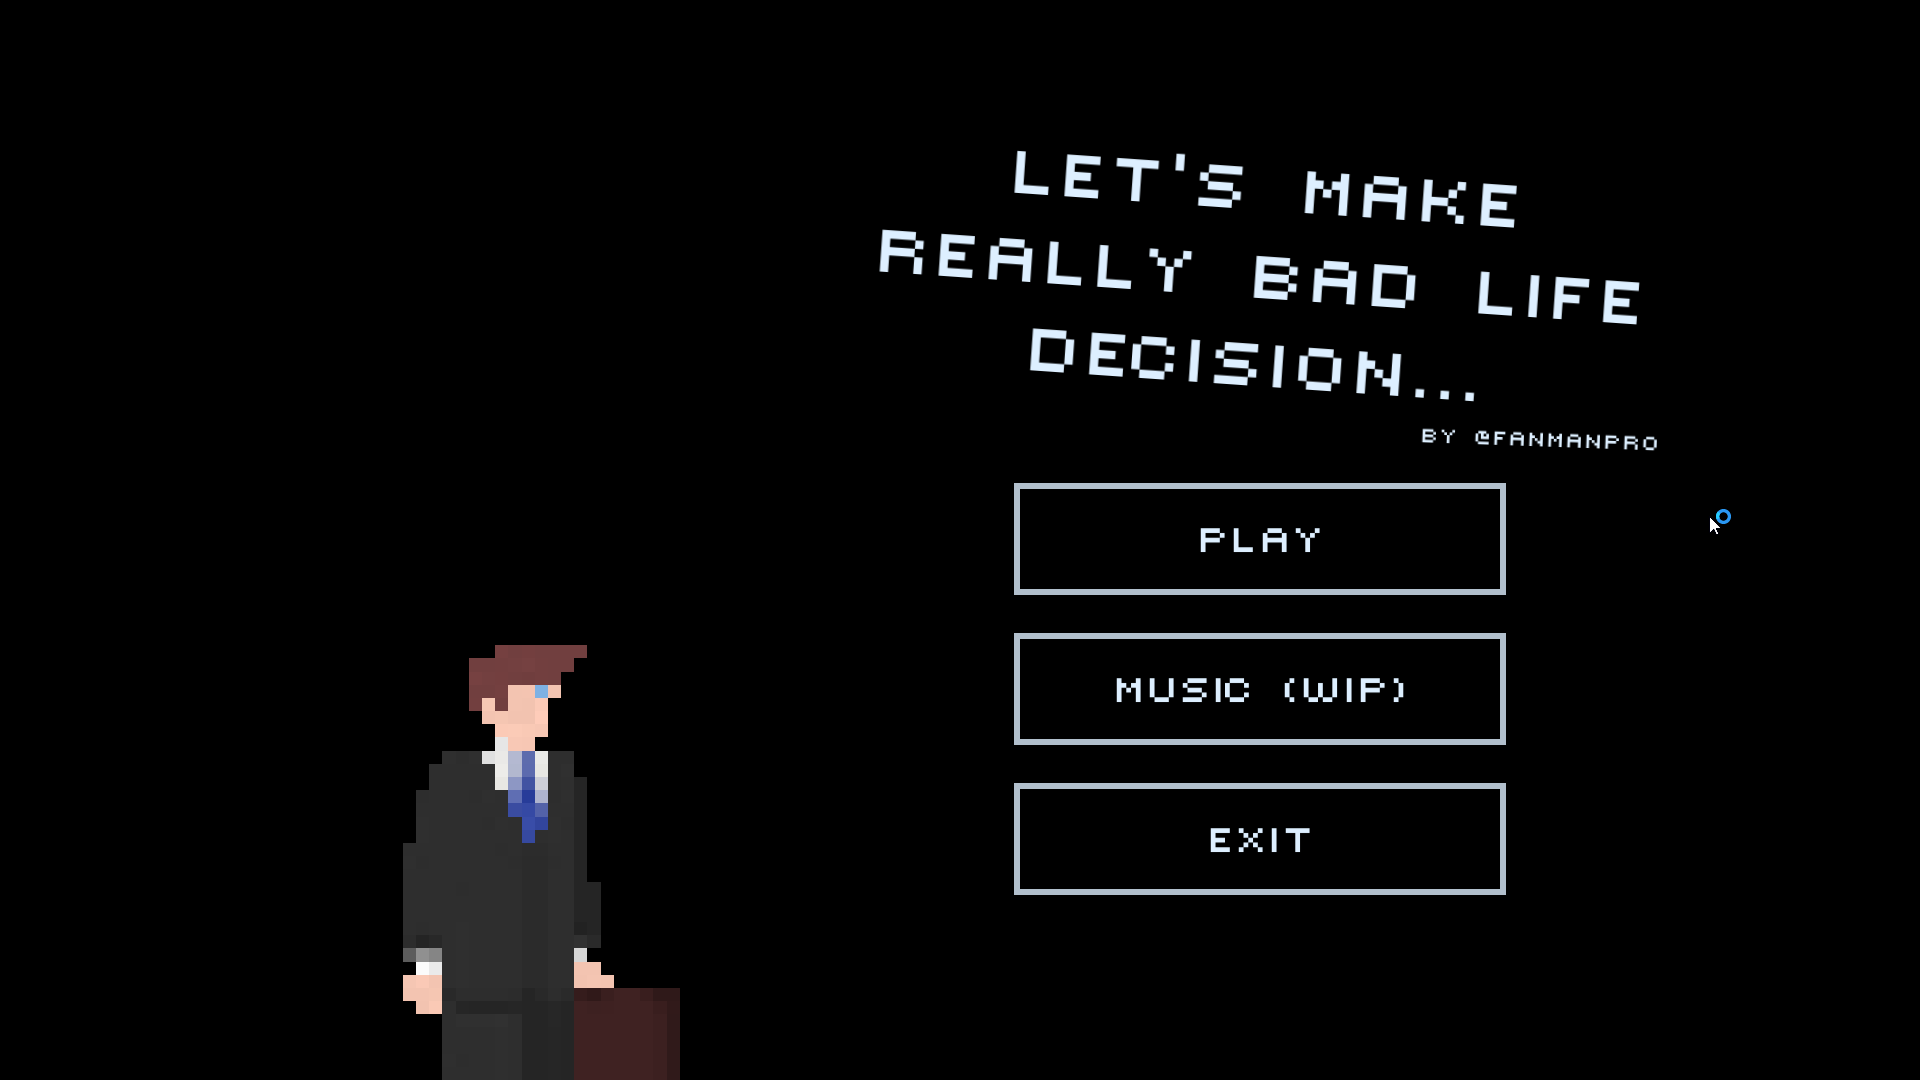 Let's make really bad life decisions...